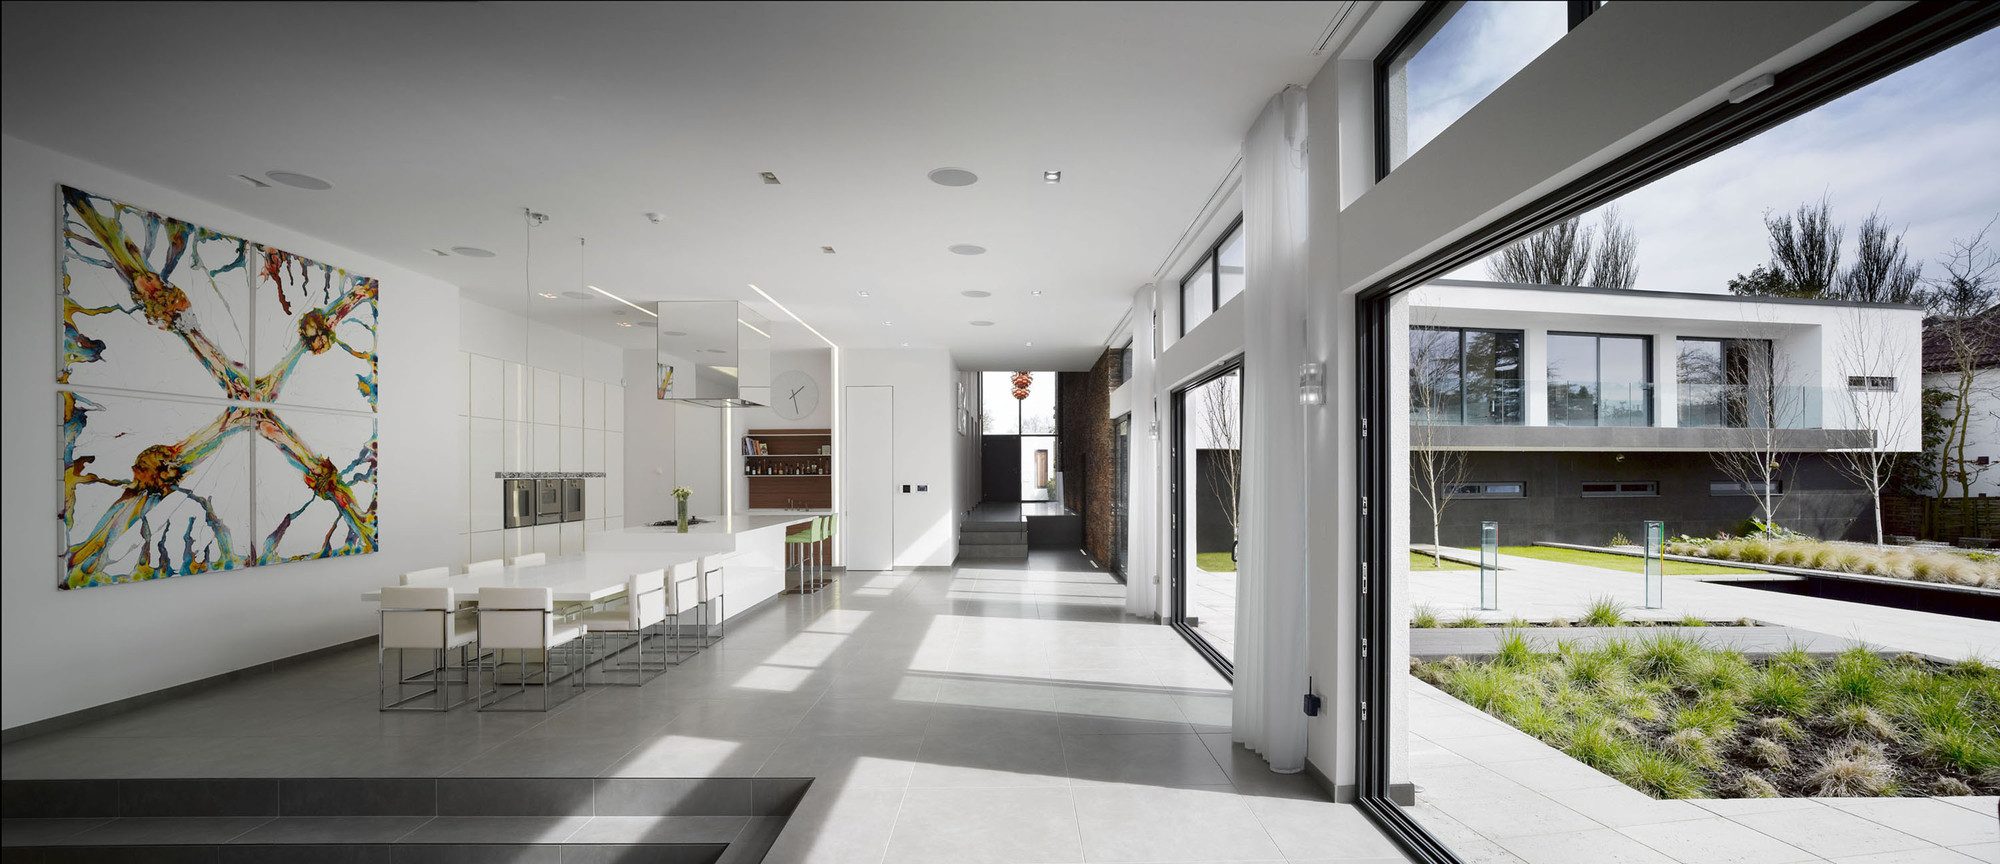 Gallery of regent road architecture m 8 for Lloyds architecture planning interiors